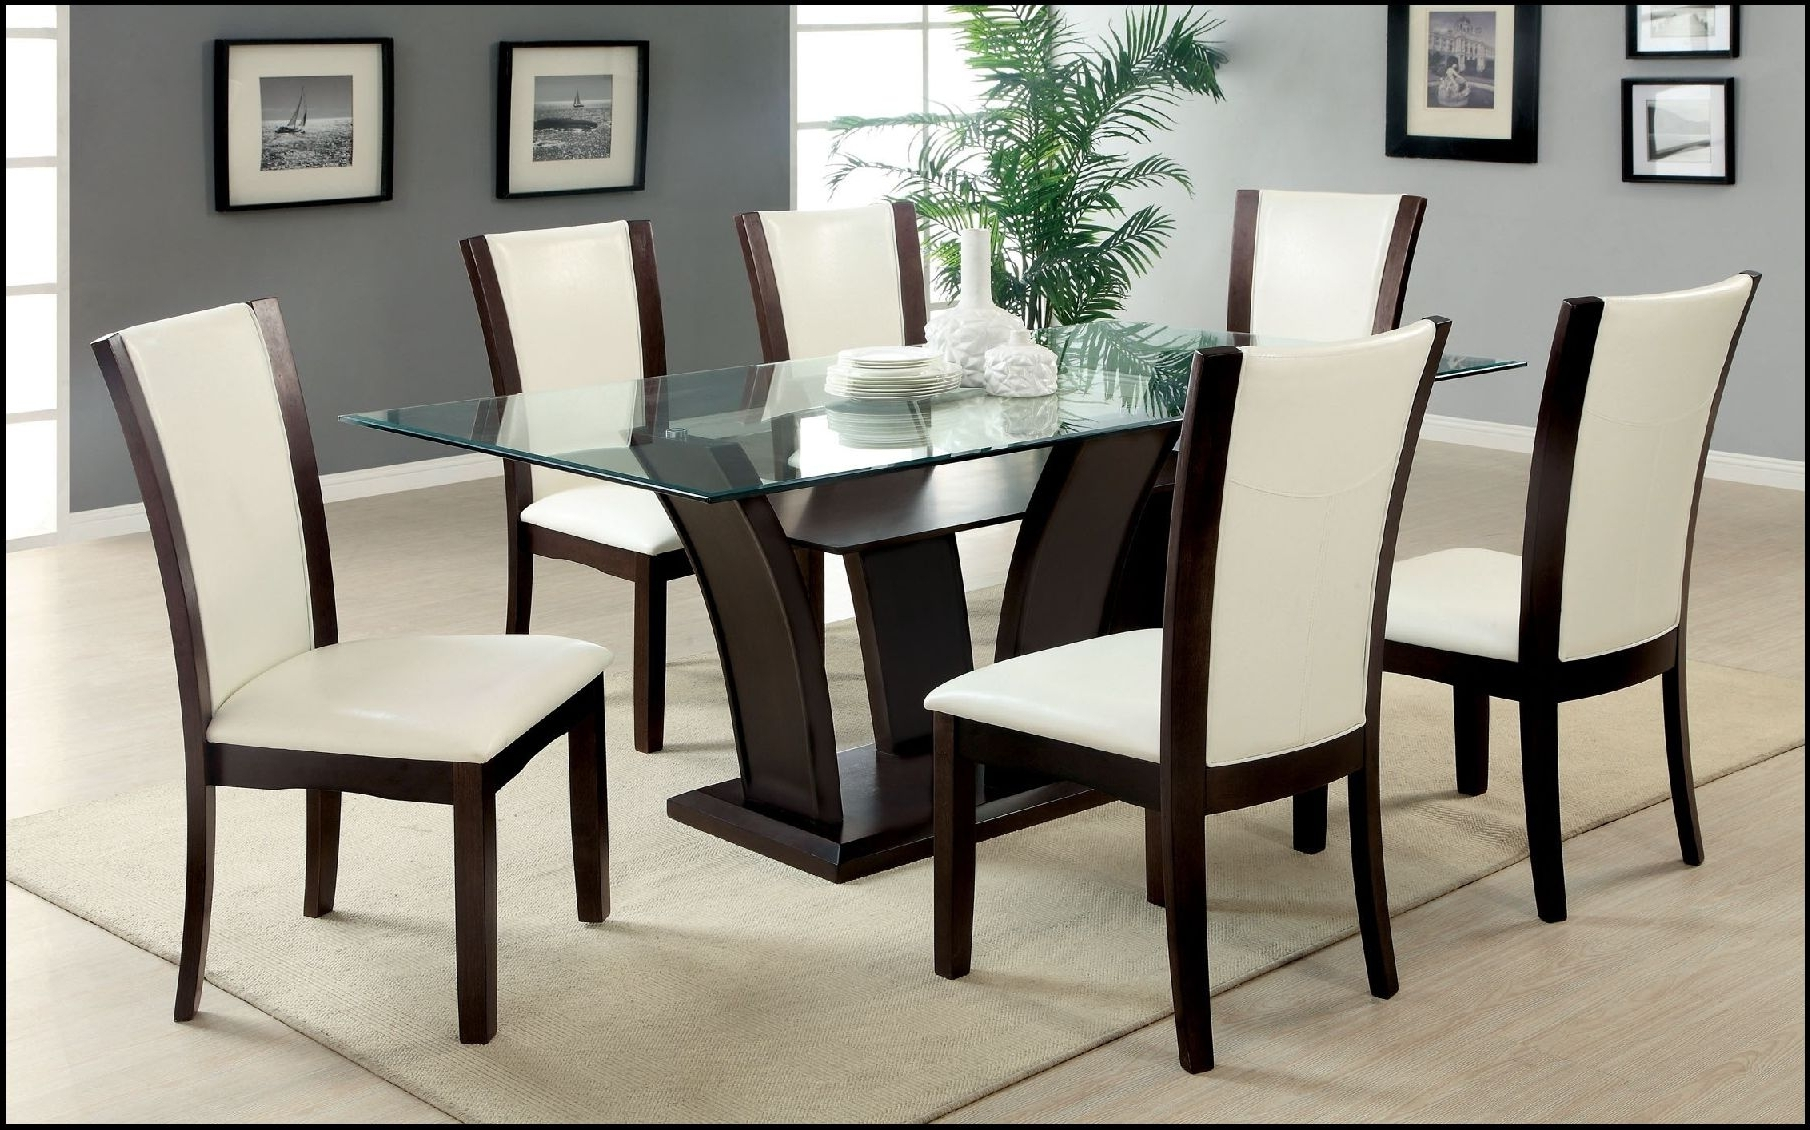 Best And Newest Dining Table Set 6 Seater Round And Chairs Six Kitchen 4 Stunning With Regard To Dining Table Sets With 6 Chairs (View 4 of 25)